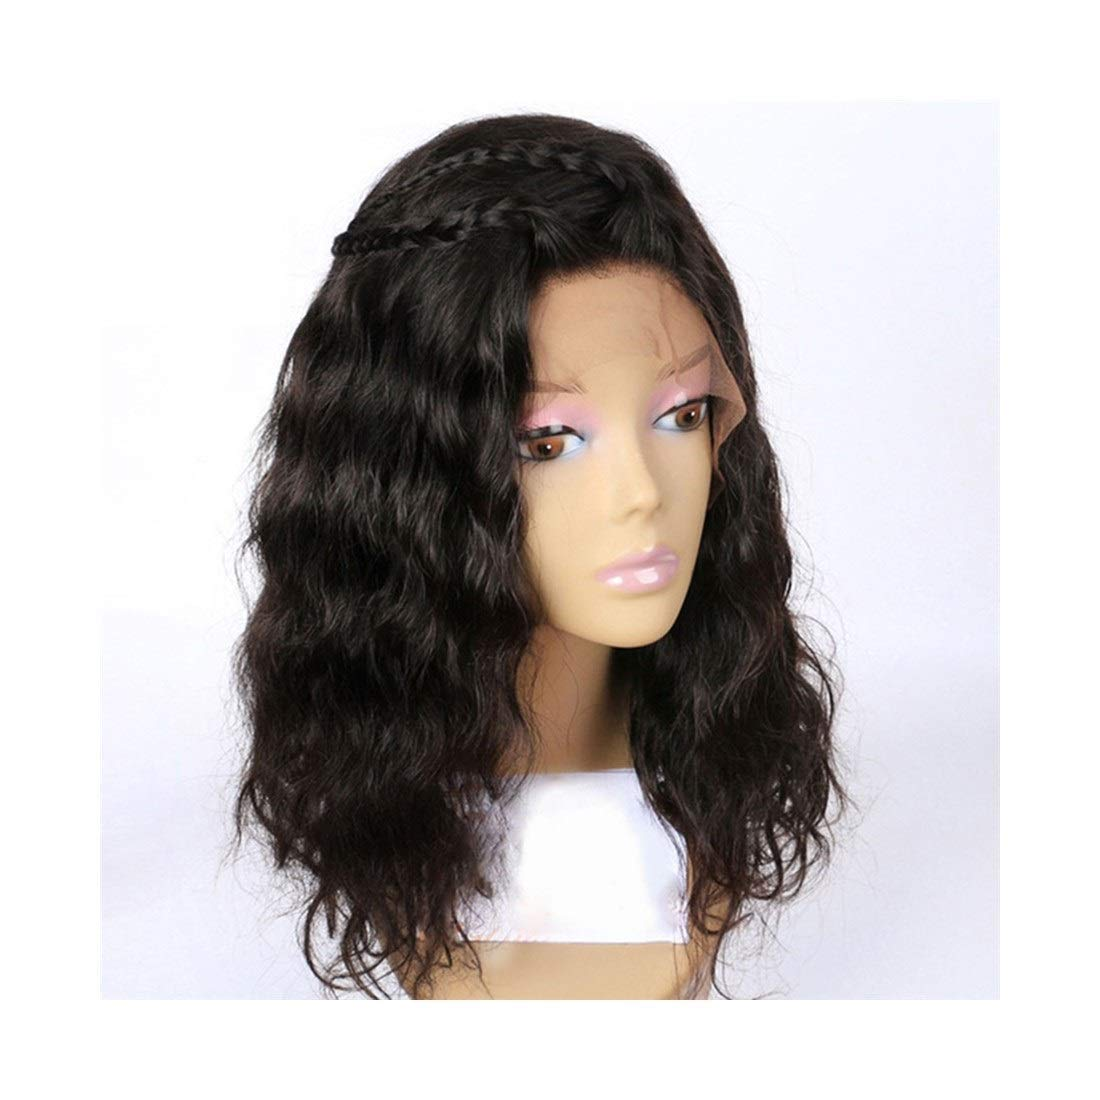 XUXUWA Wig Women Front Lace Se Limited price Austin Mall Curly Hair Synthetic Long